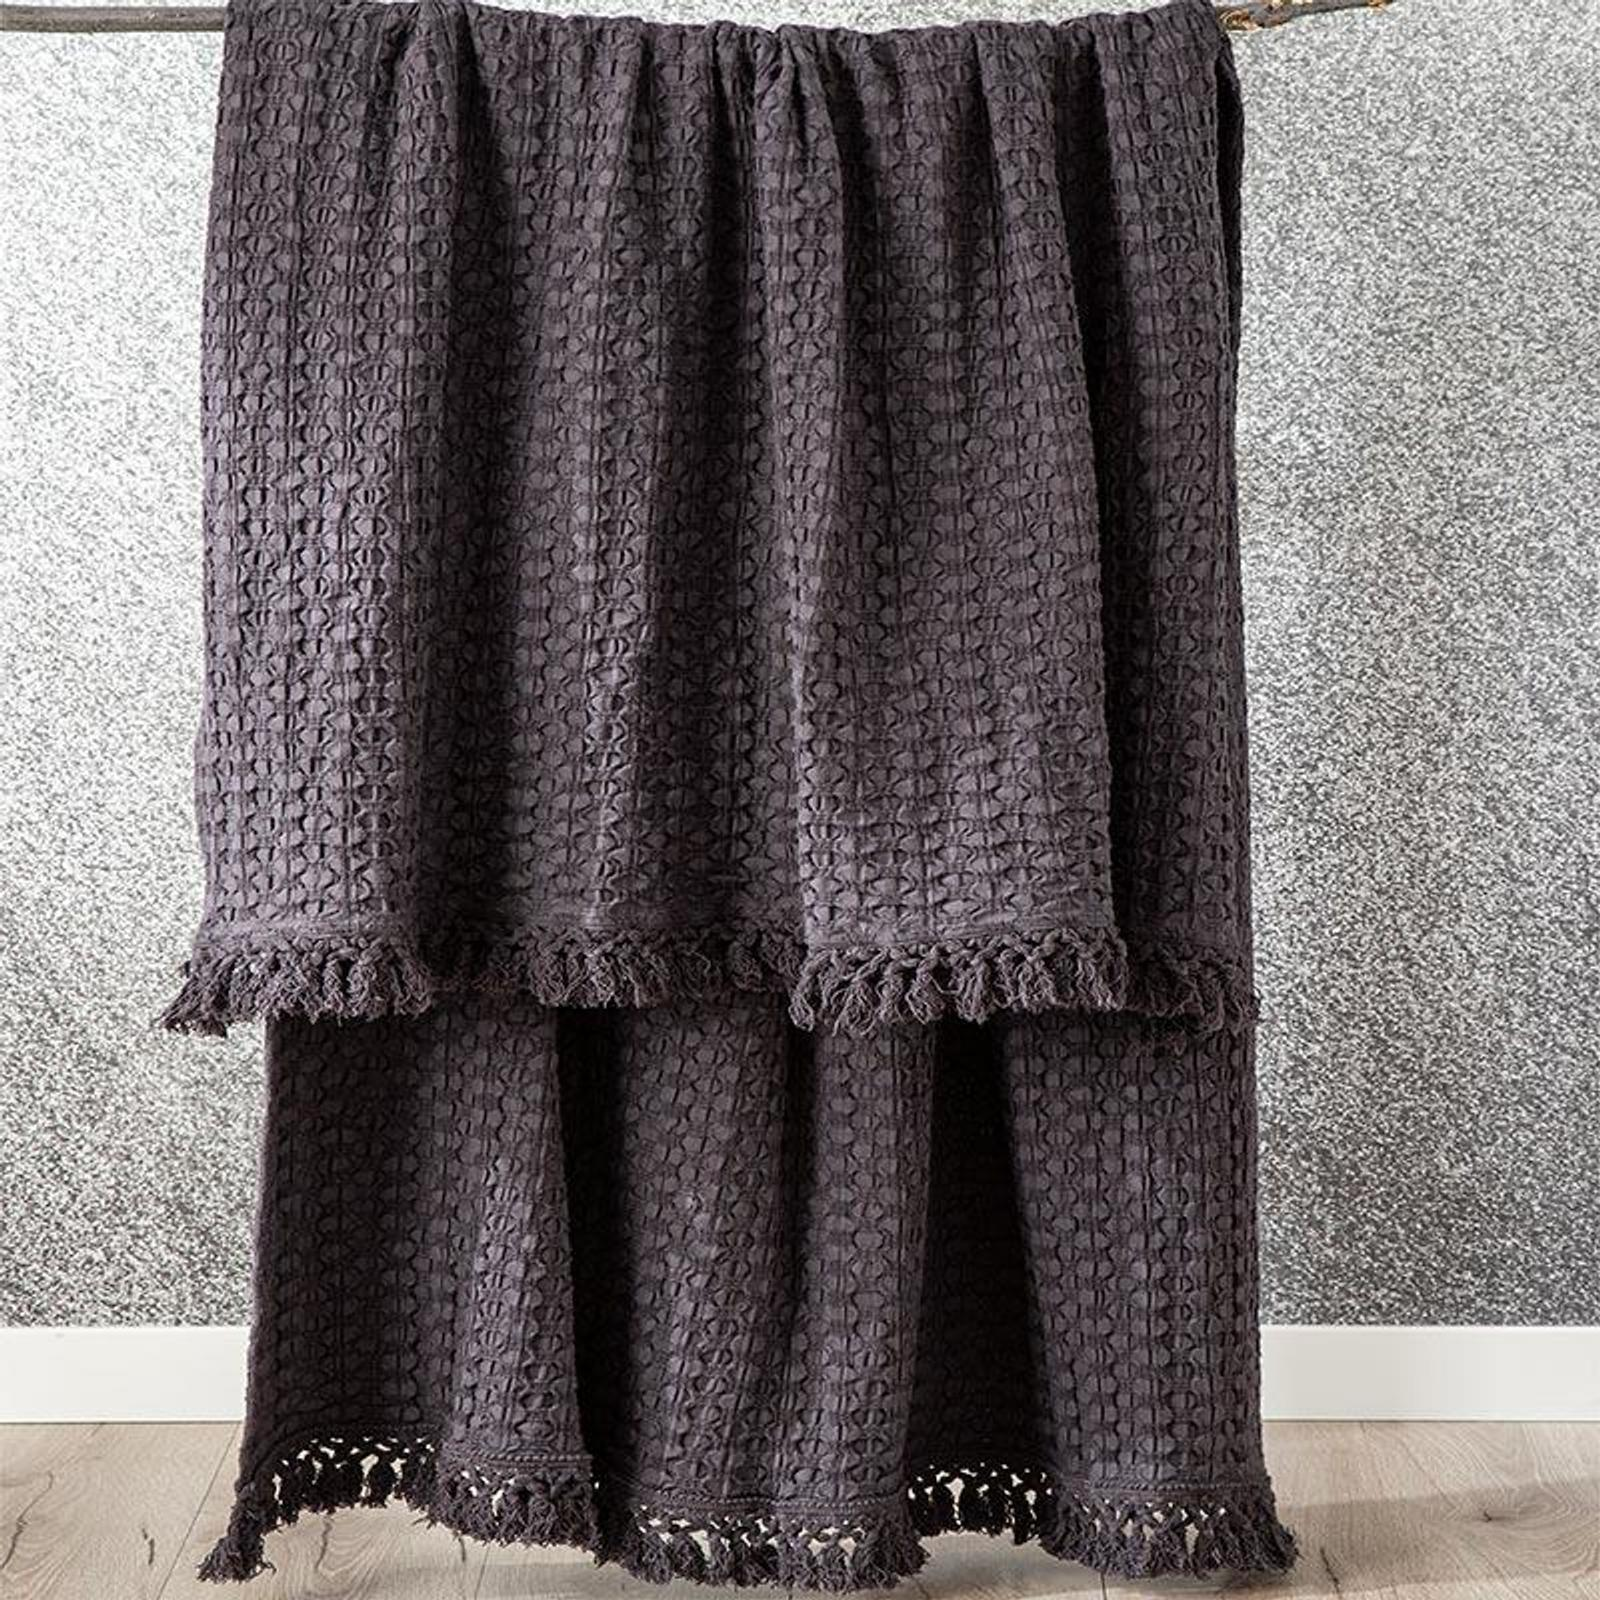 Renee Taylor Alysian Washed Cotton Textured Magnet Throw